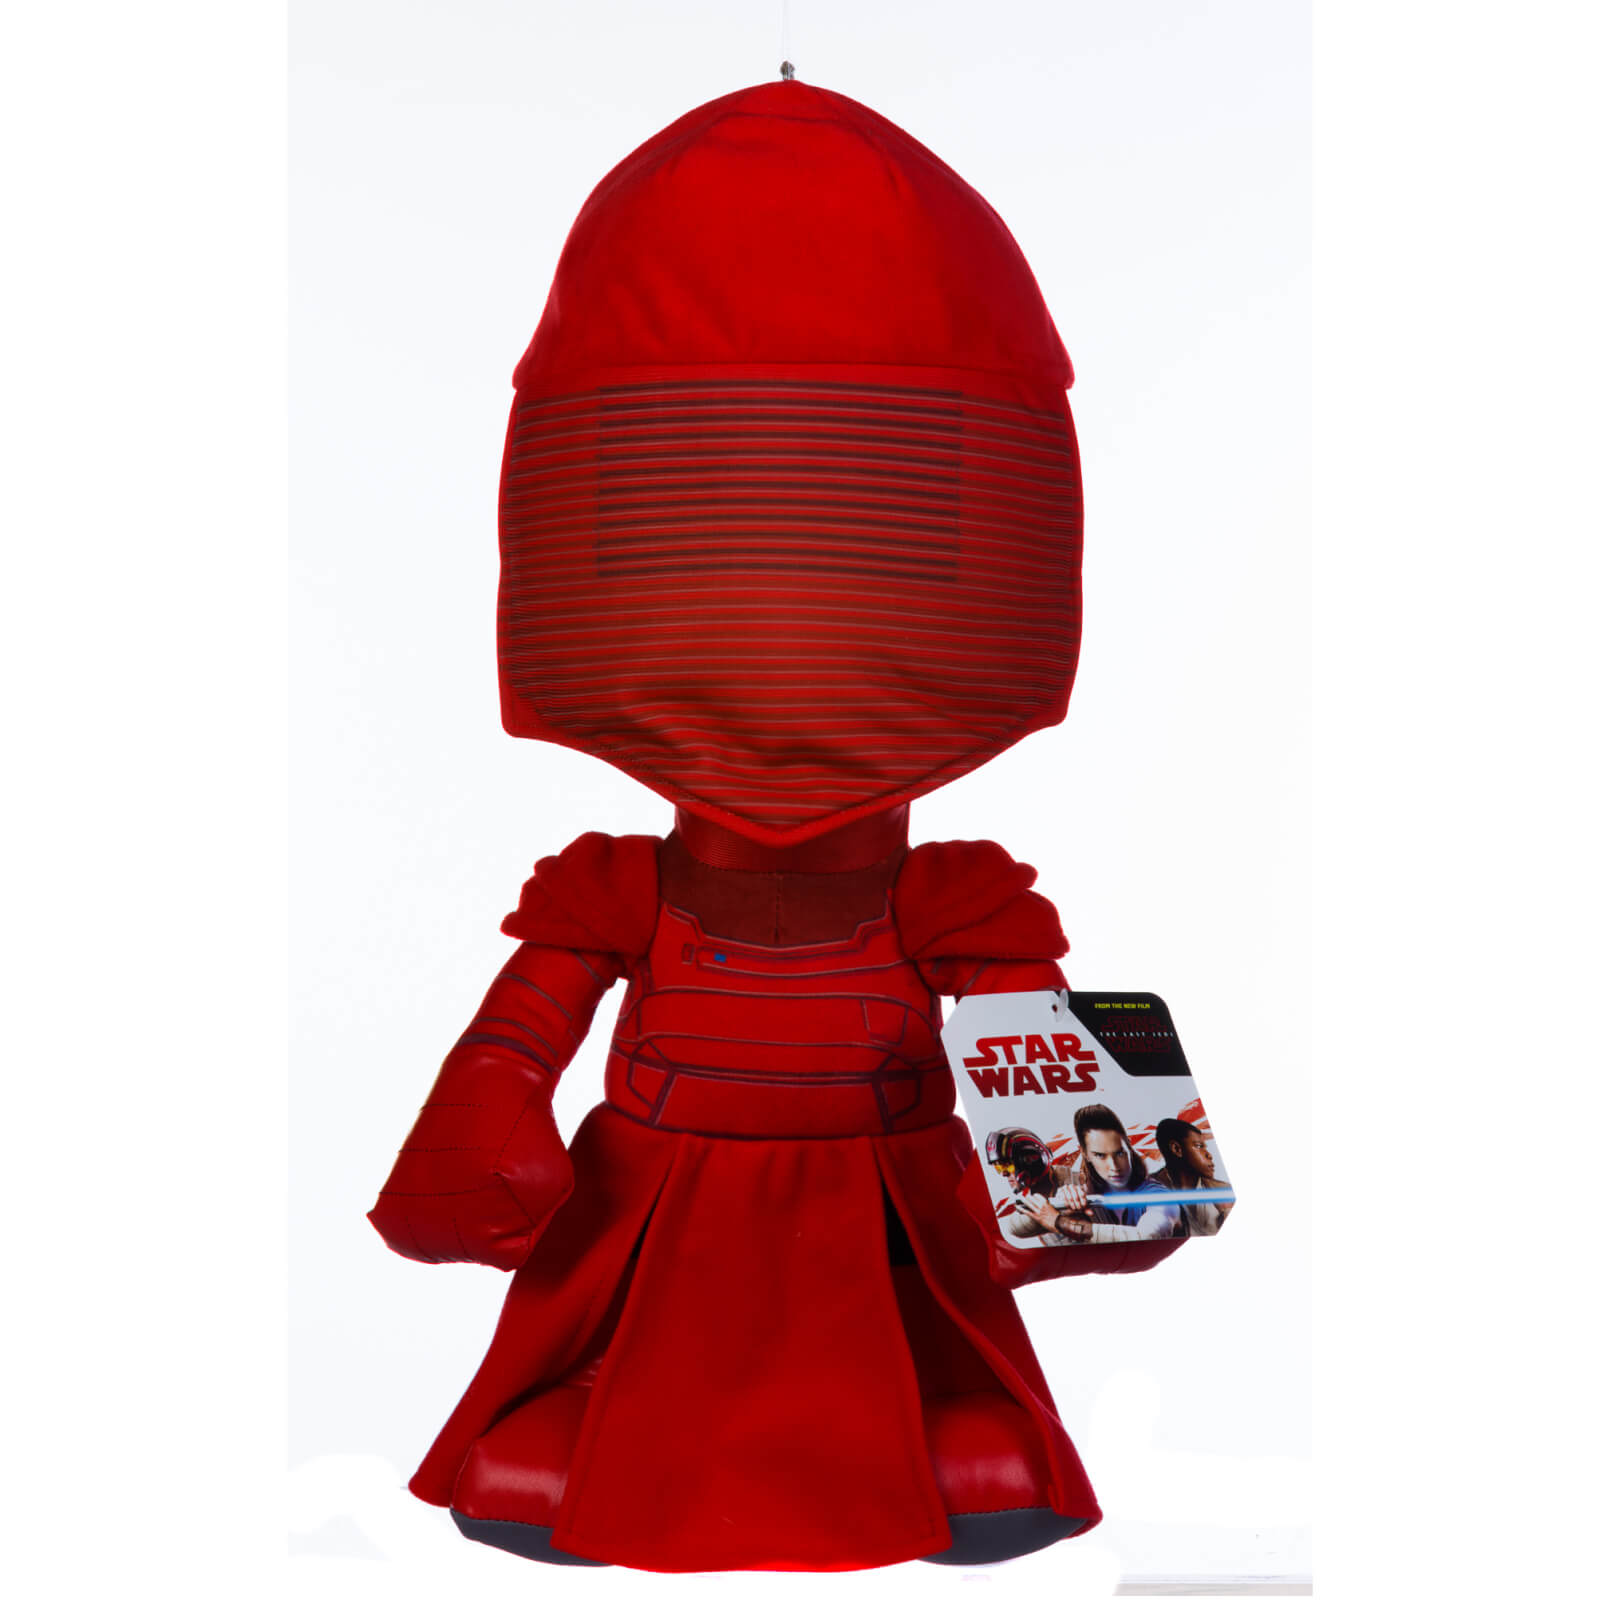 "Star Wars Episode 8 - The Last Jedi - 18"""" Praetorian Guard Plush"